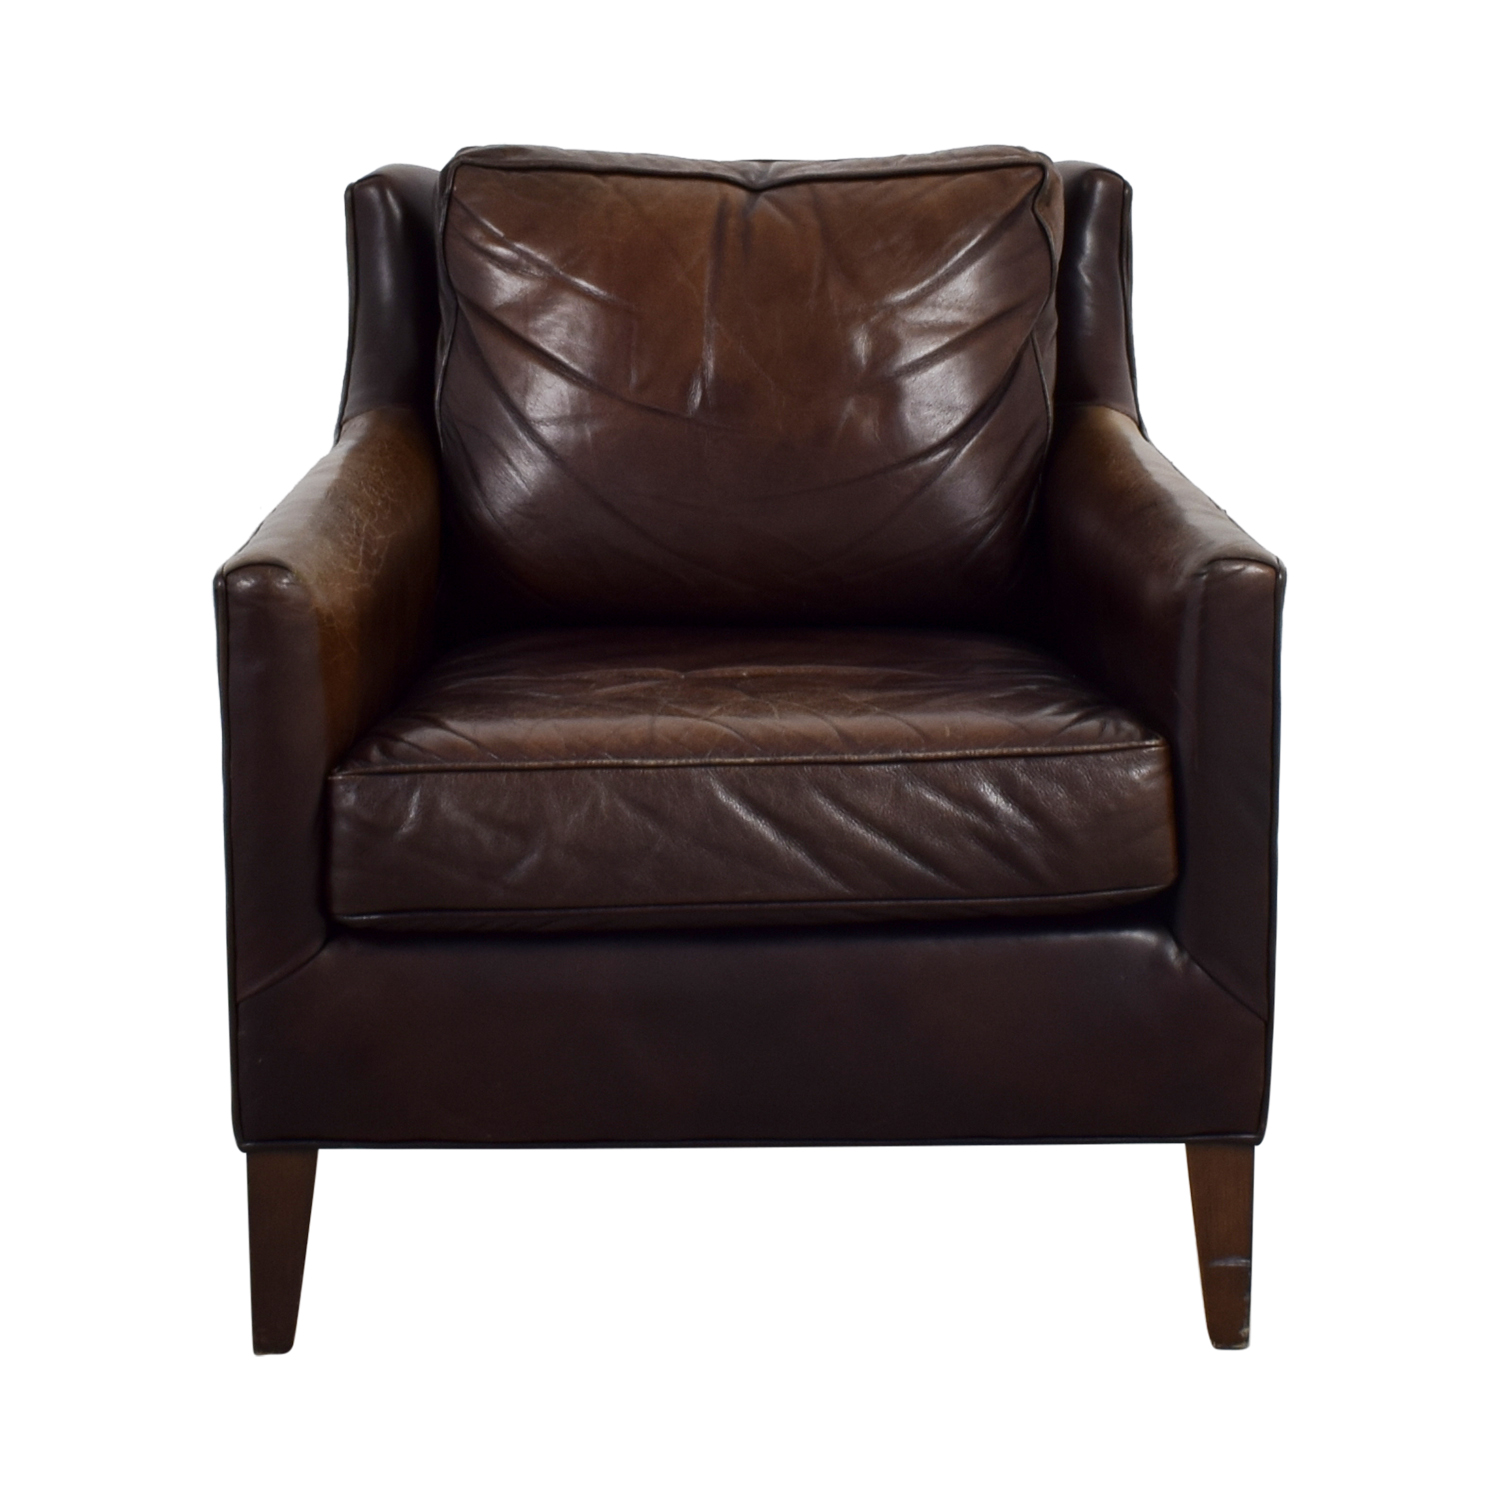 62 Off Pottery Barn Pottery Barn Brown Leather Armchair